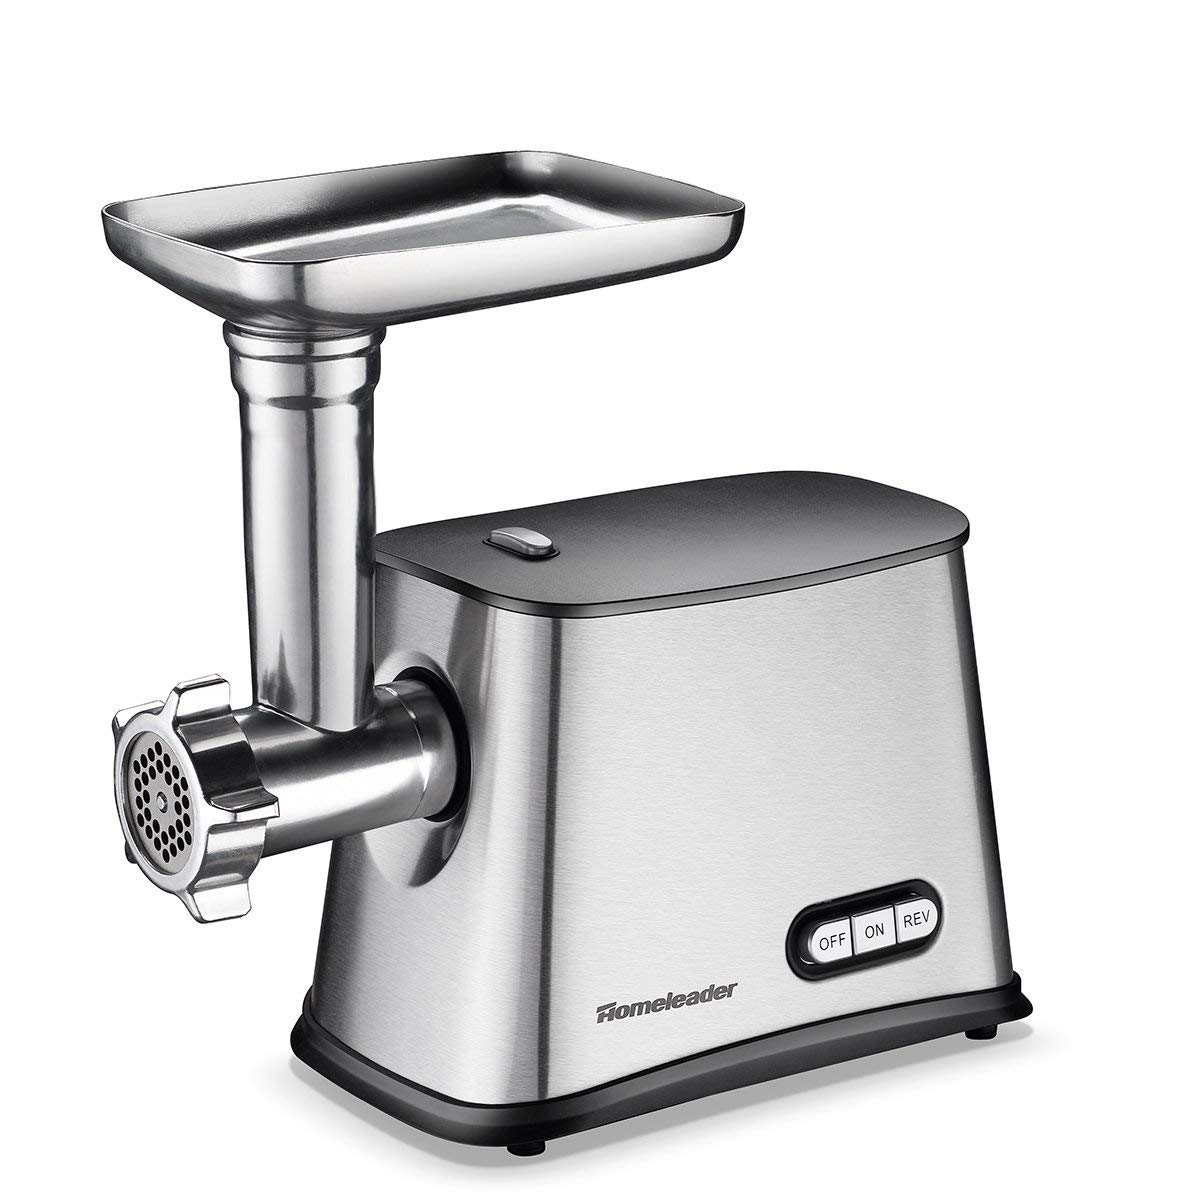 Homeleader Electric Meat Grinder & Sausage Stuffer with 3 Stainless Steel Grinding Plates, Heavy Duty Meat Mincer with Kubbe Attachment, Stainless Steel, Sliver